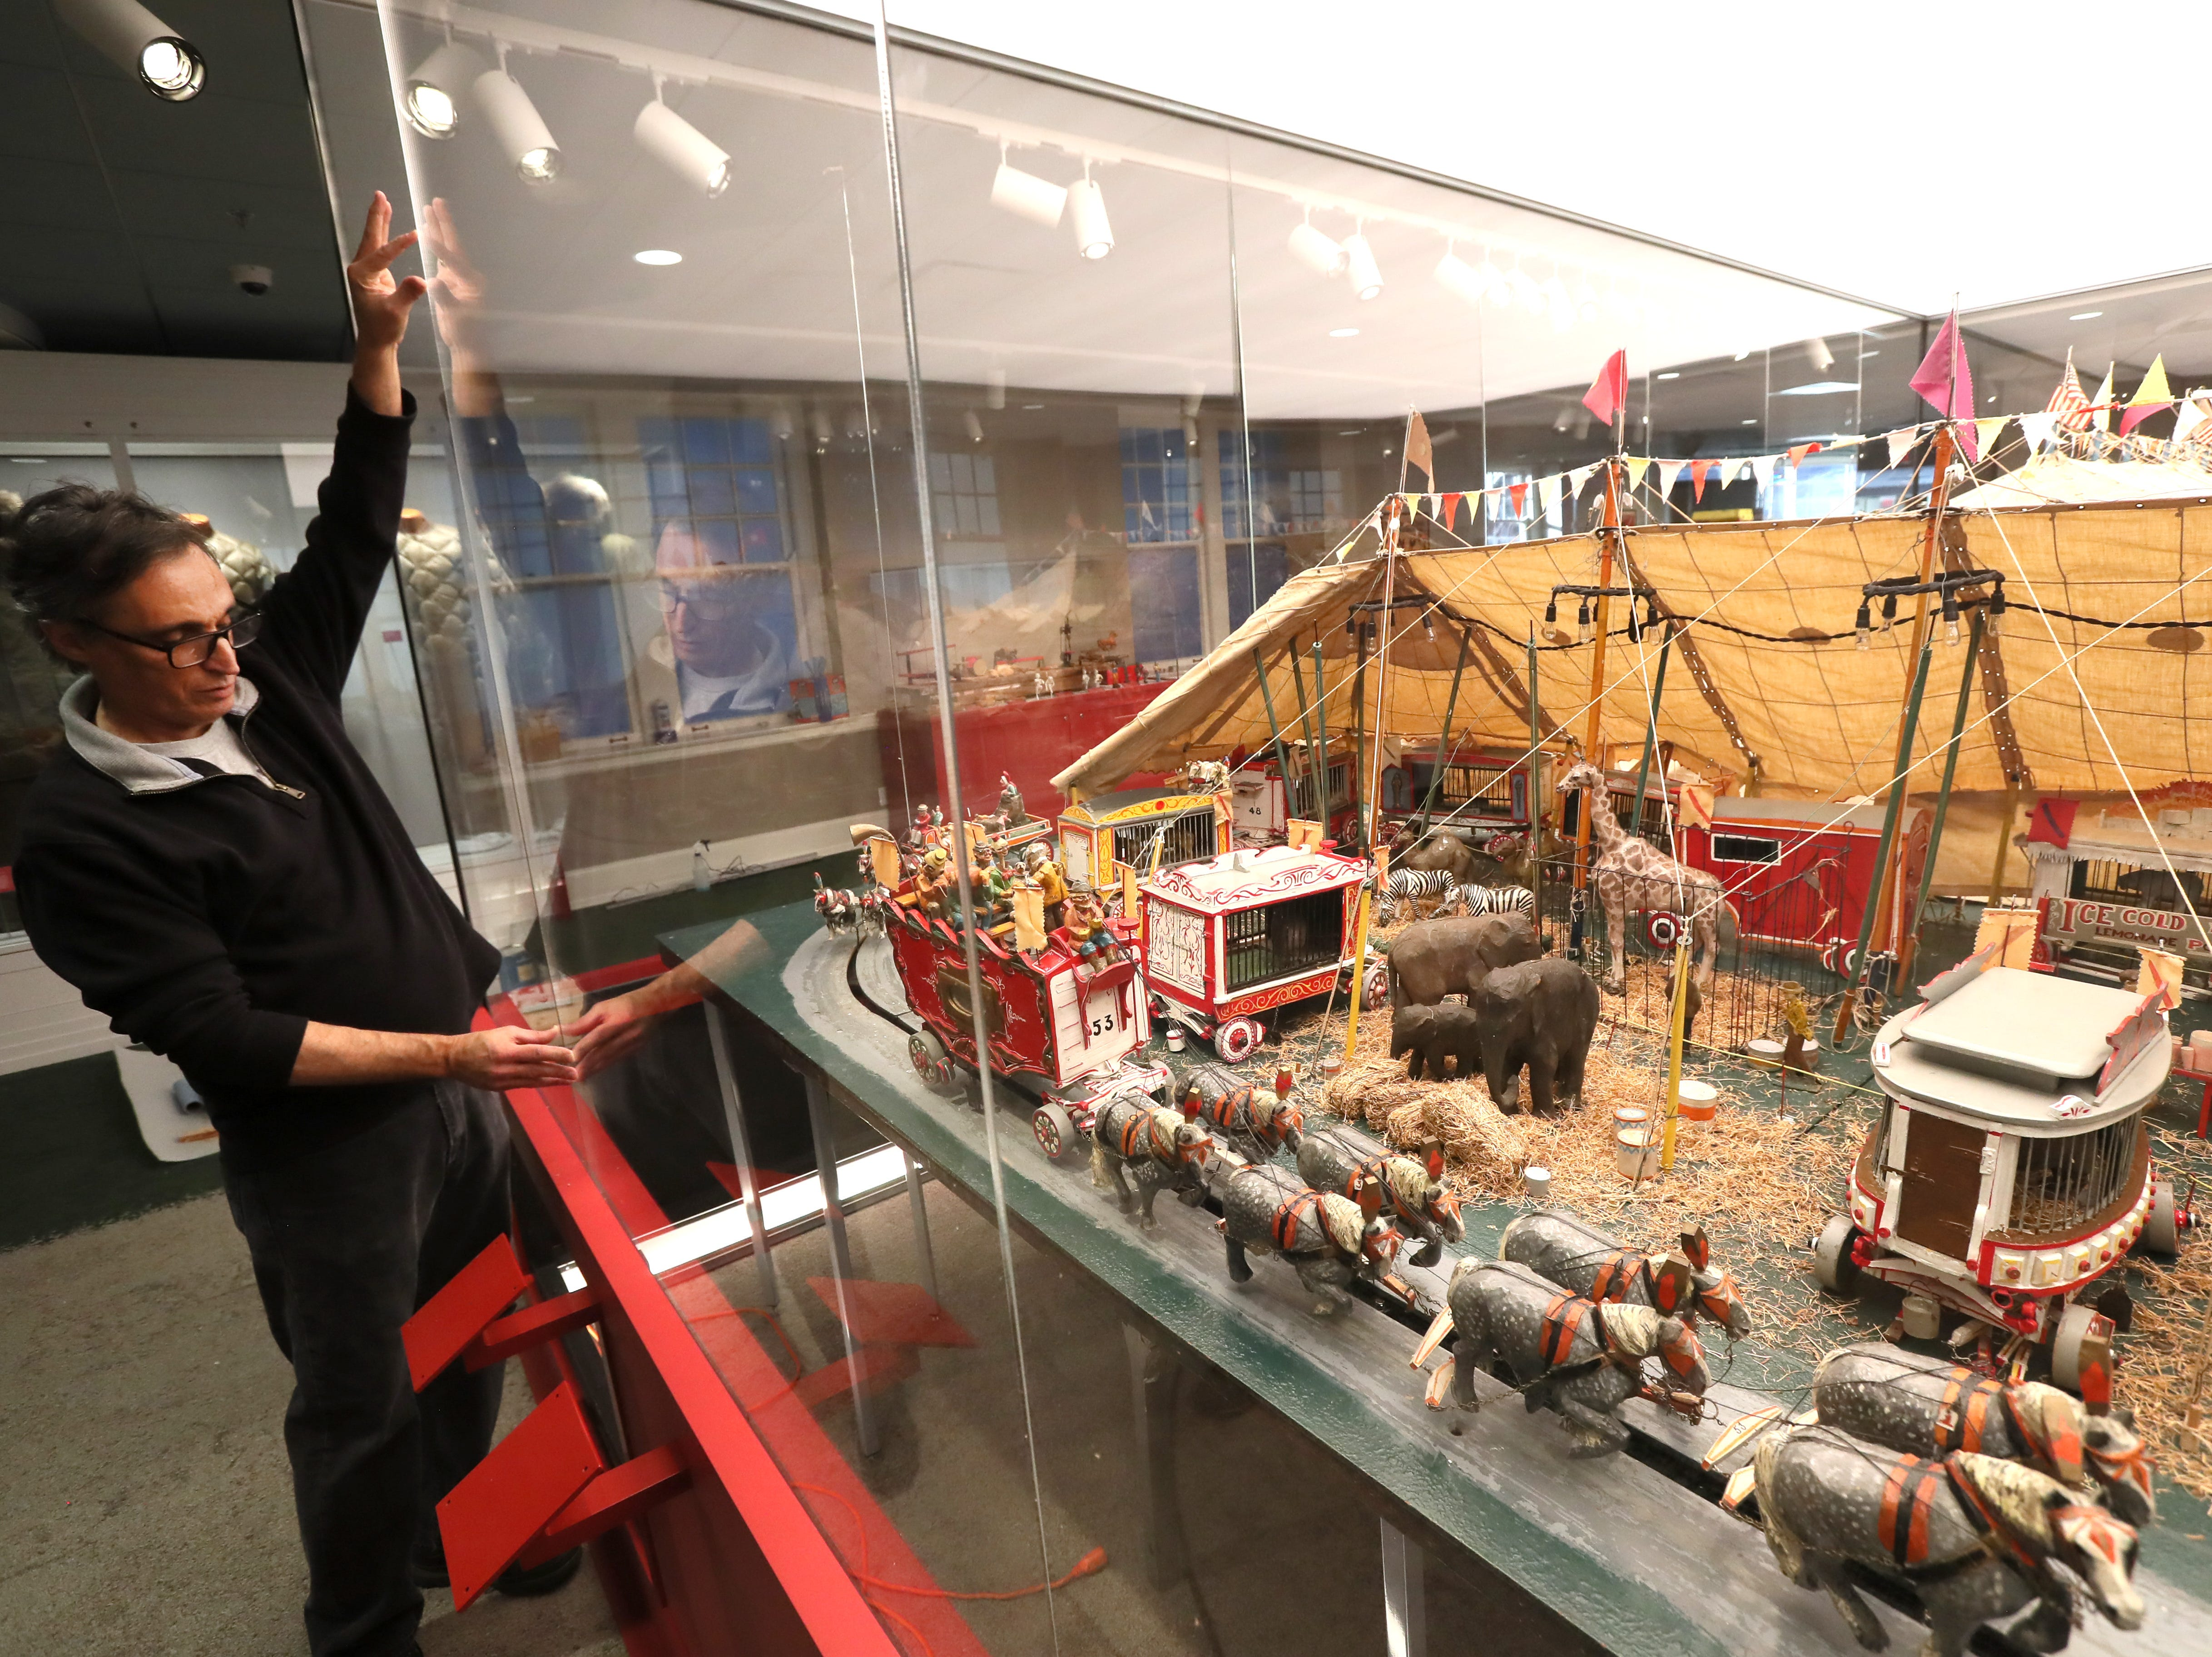 Manager of Exhibits Steve Masler discusses part of the Pink Palace Museum's nearly two-year renovation phase, a restored Clyde Parke Miniature Circus, as they set to re-open the original mansion space to the public with a VIP reception on Wednesday, Dec. 5, 2018.